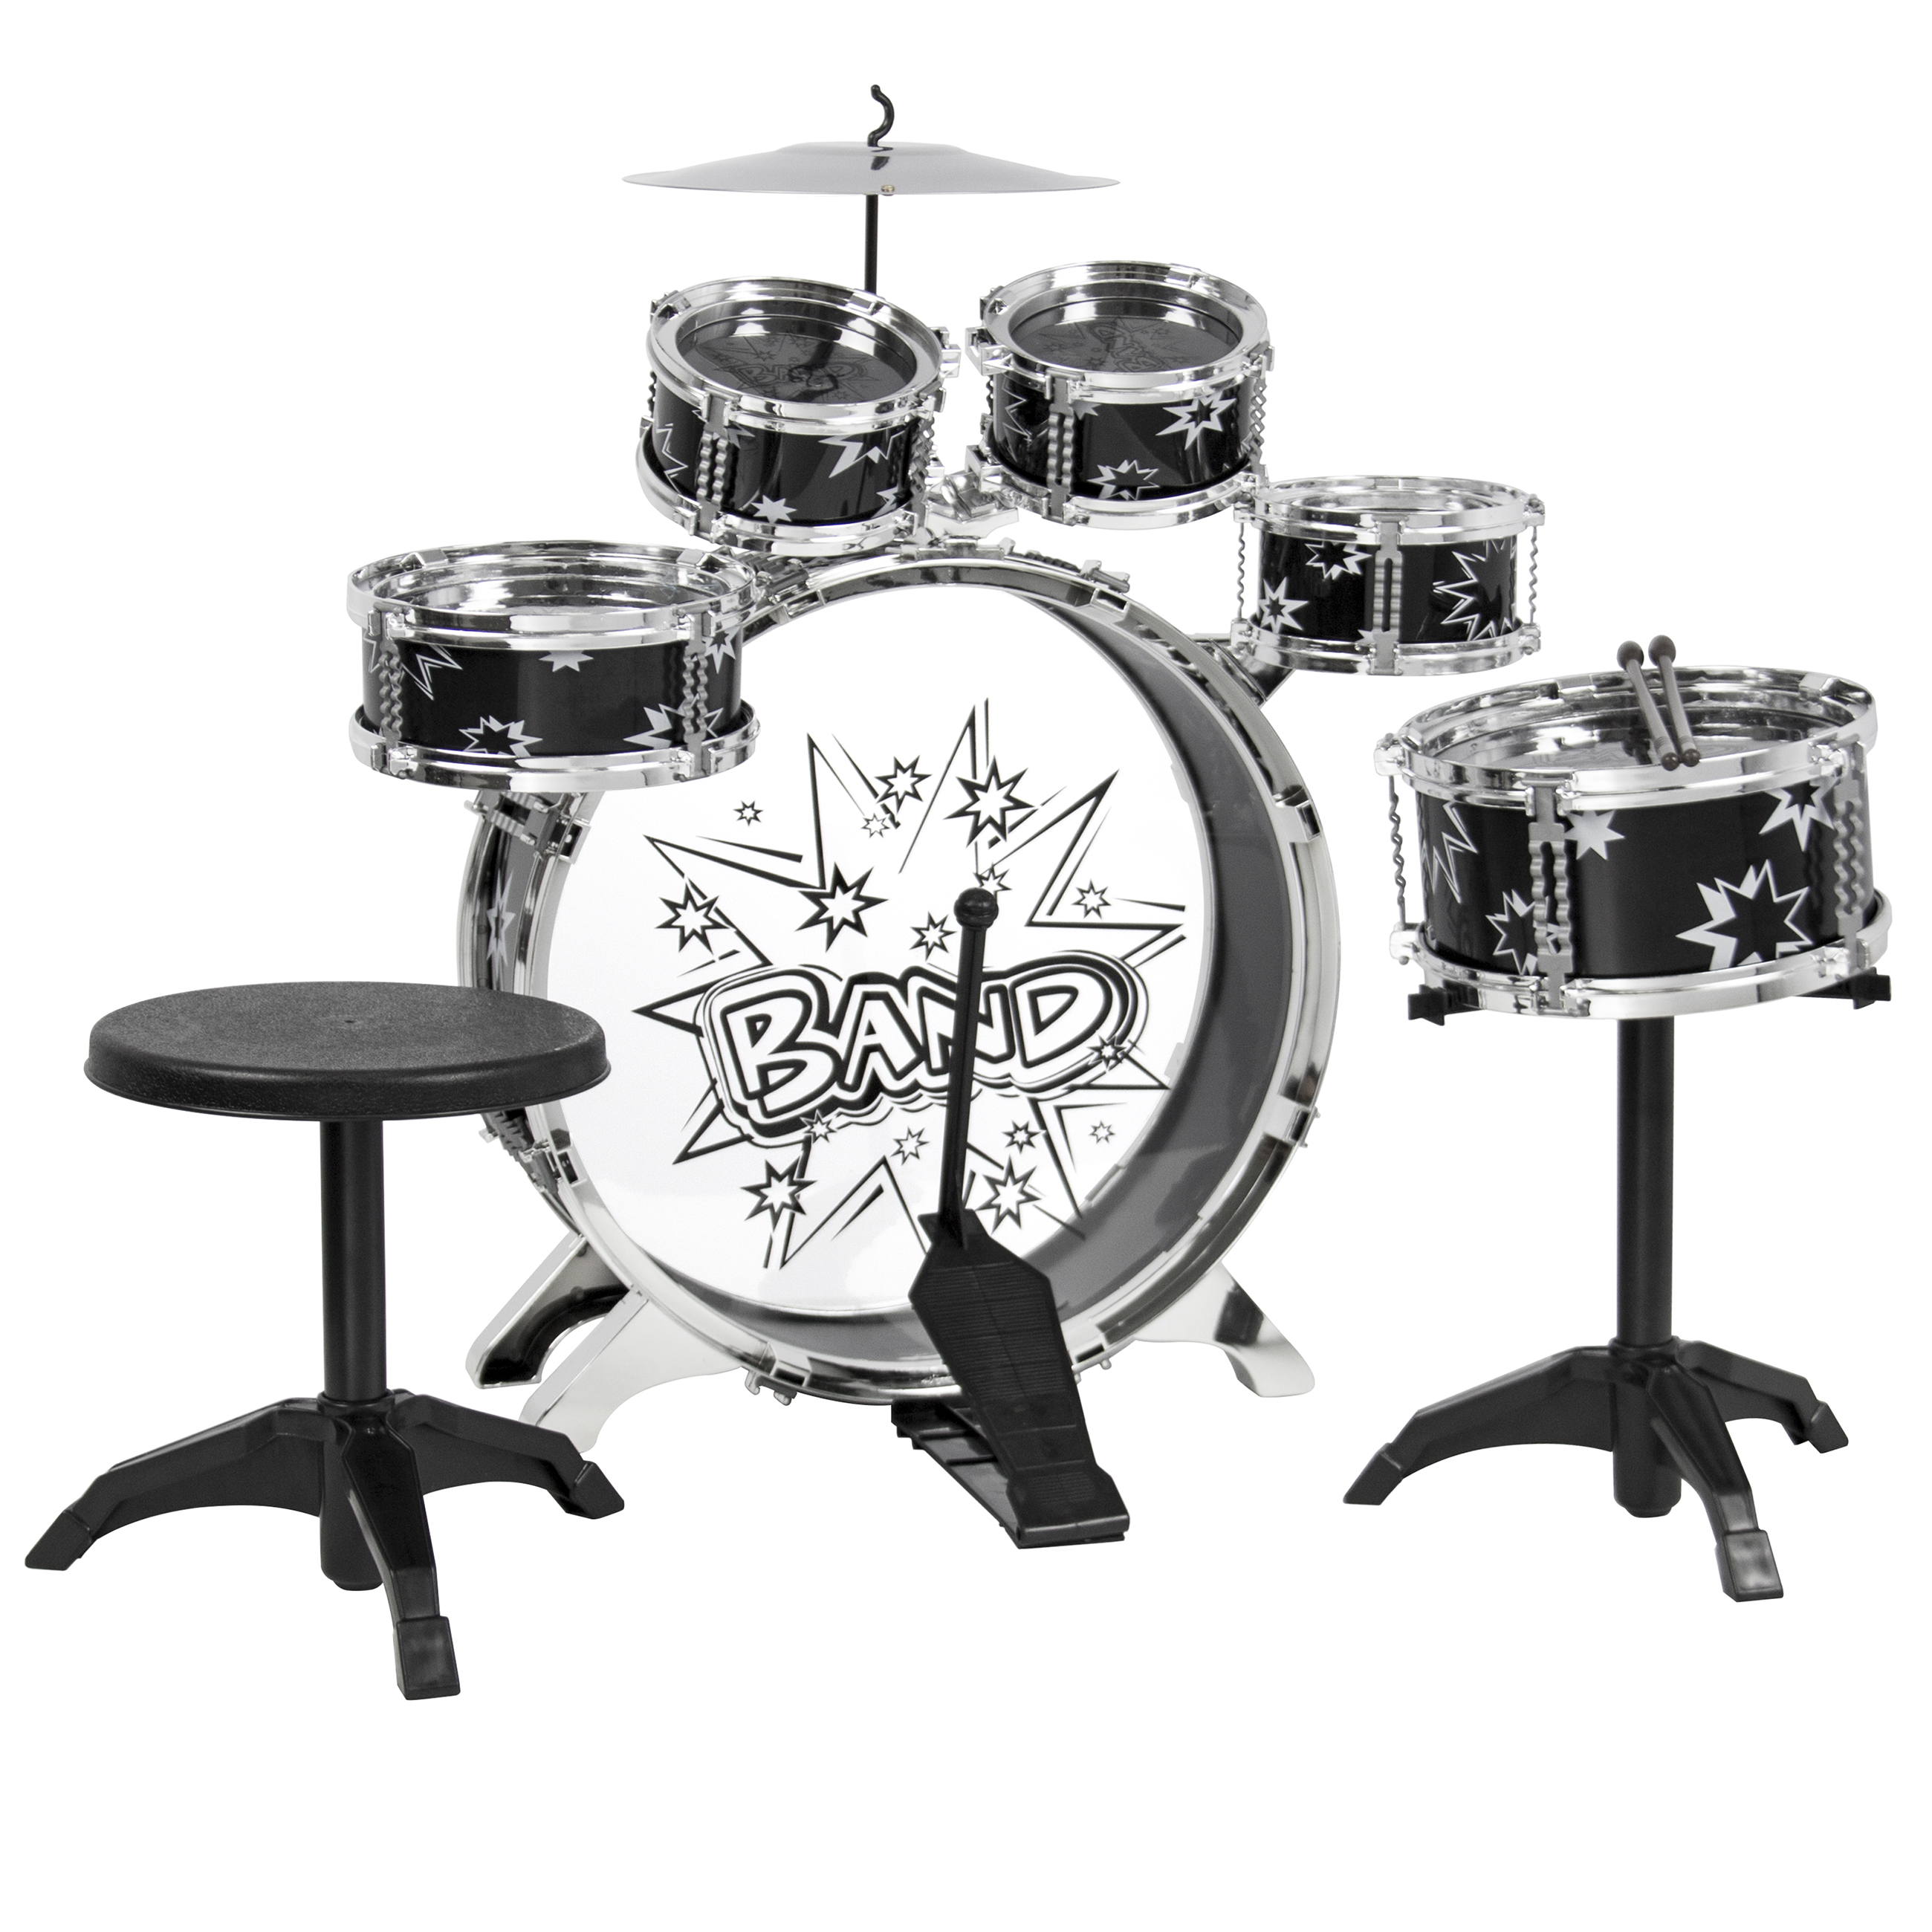 BCP Kids Toy Musical Instrument 11 Piece Kids Drum Set W/ Bass Drum, Tom Drums, Cymbal, Stool, Drumsticks Drum Kit